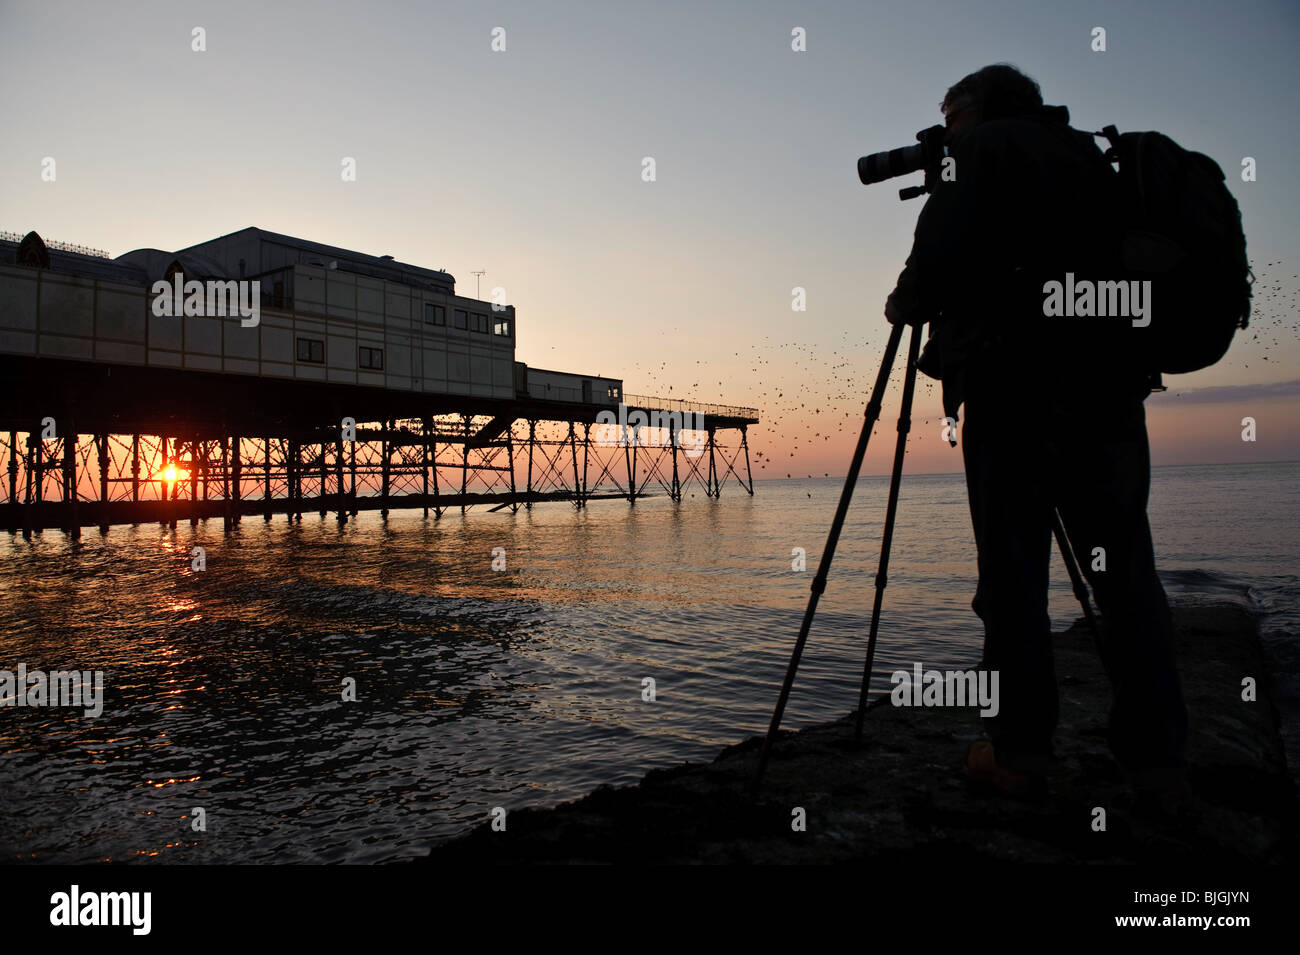 Professional Photographer Jerry Moore photographing starlings roosting at sunset. Aberystwyth pier, west wales UK - Stock Image